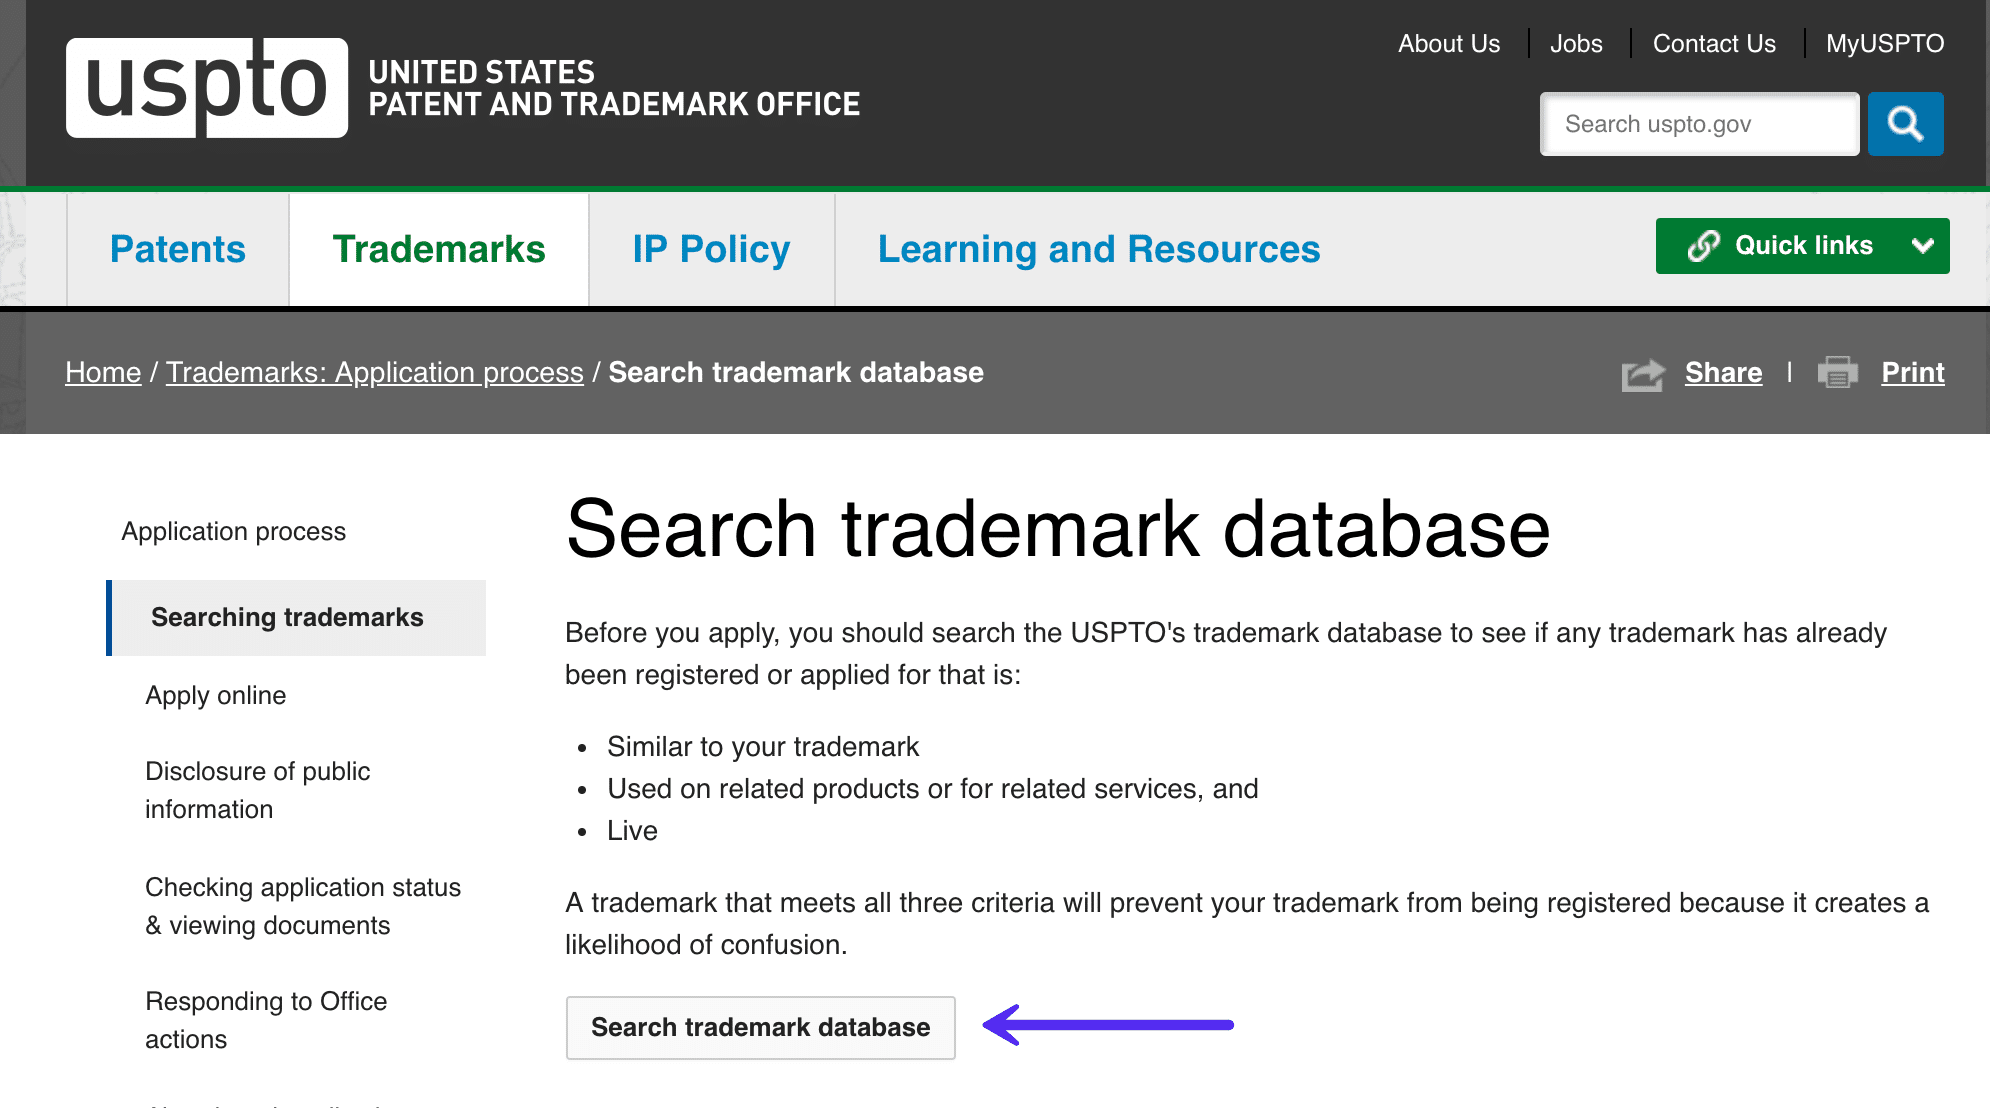 Search trademark database